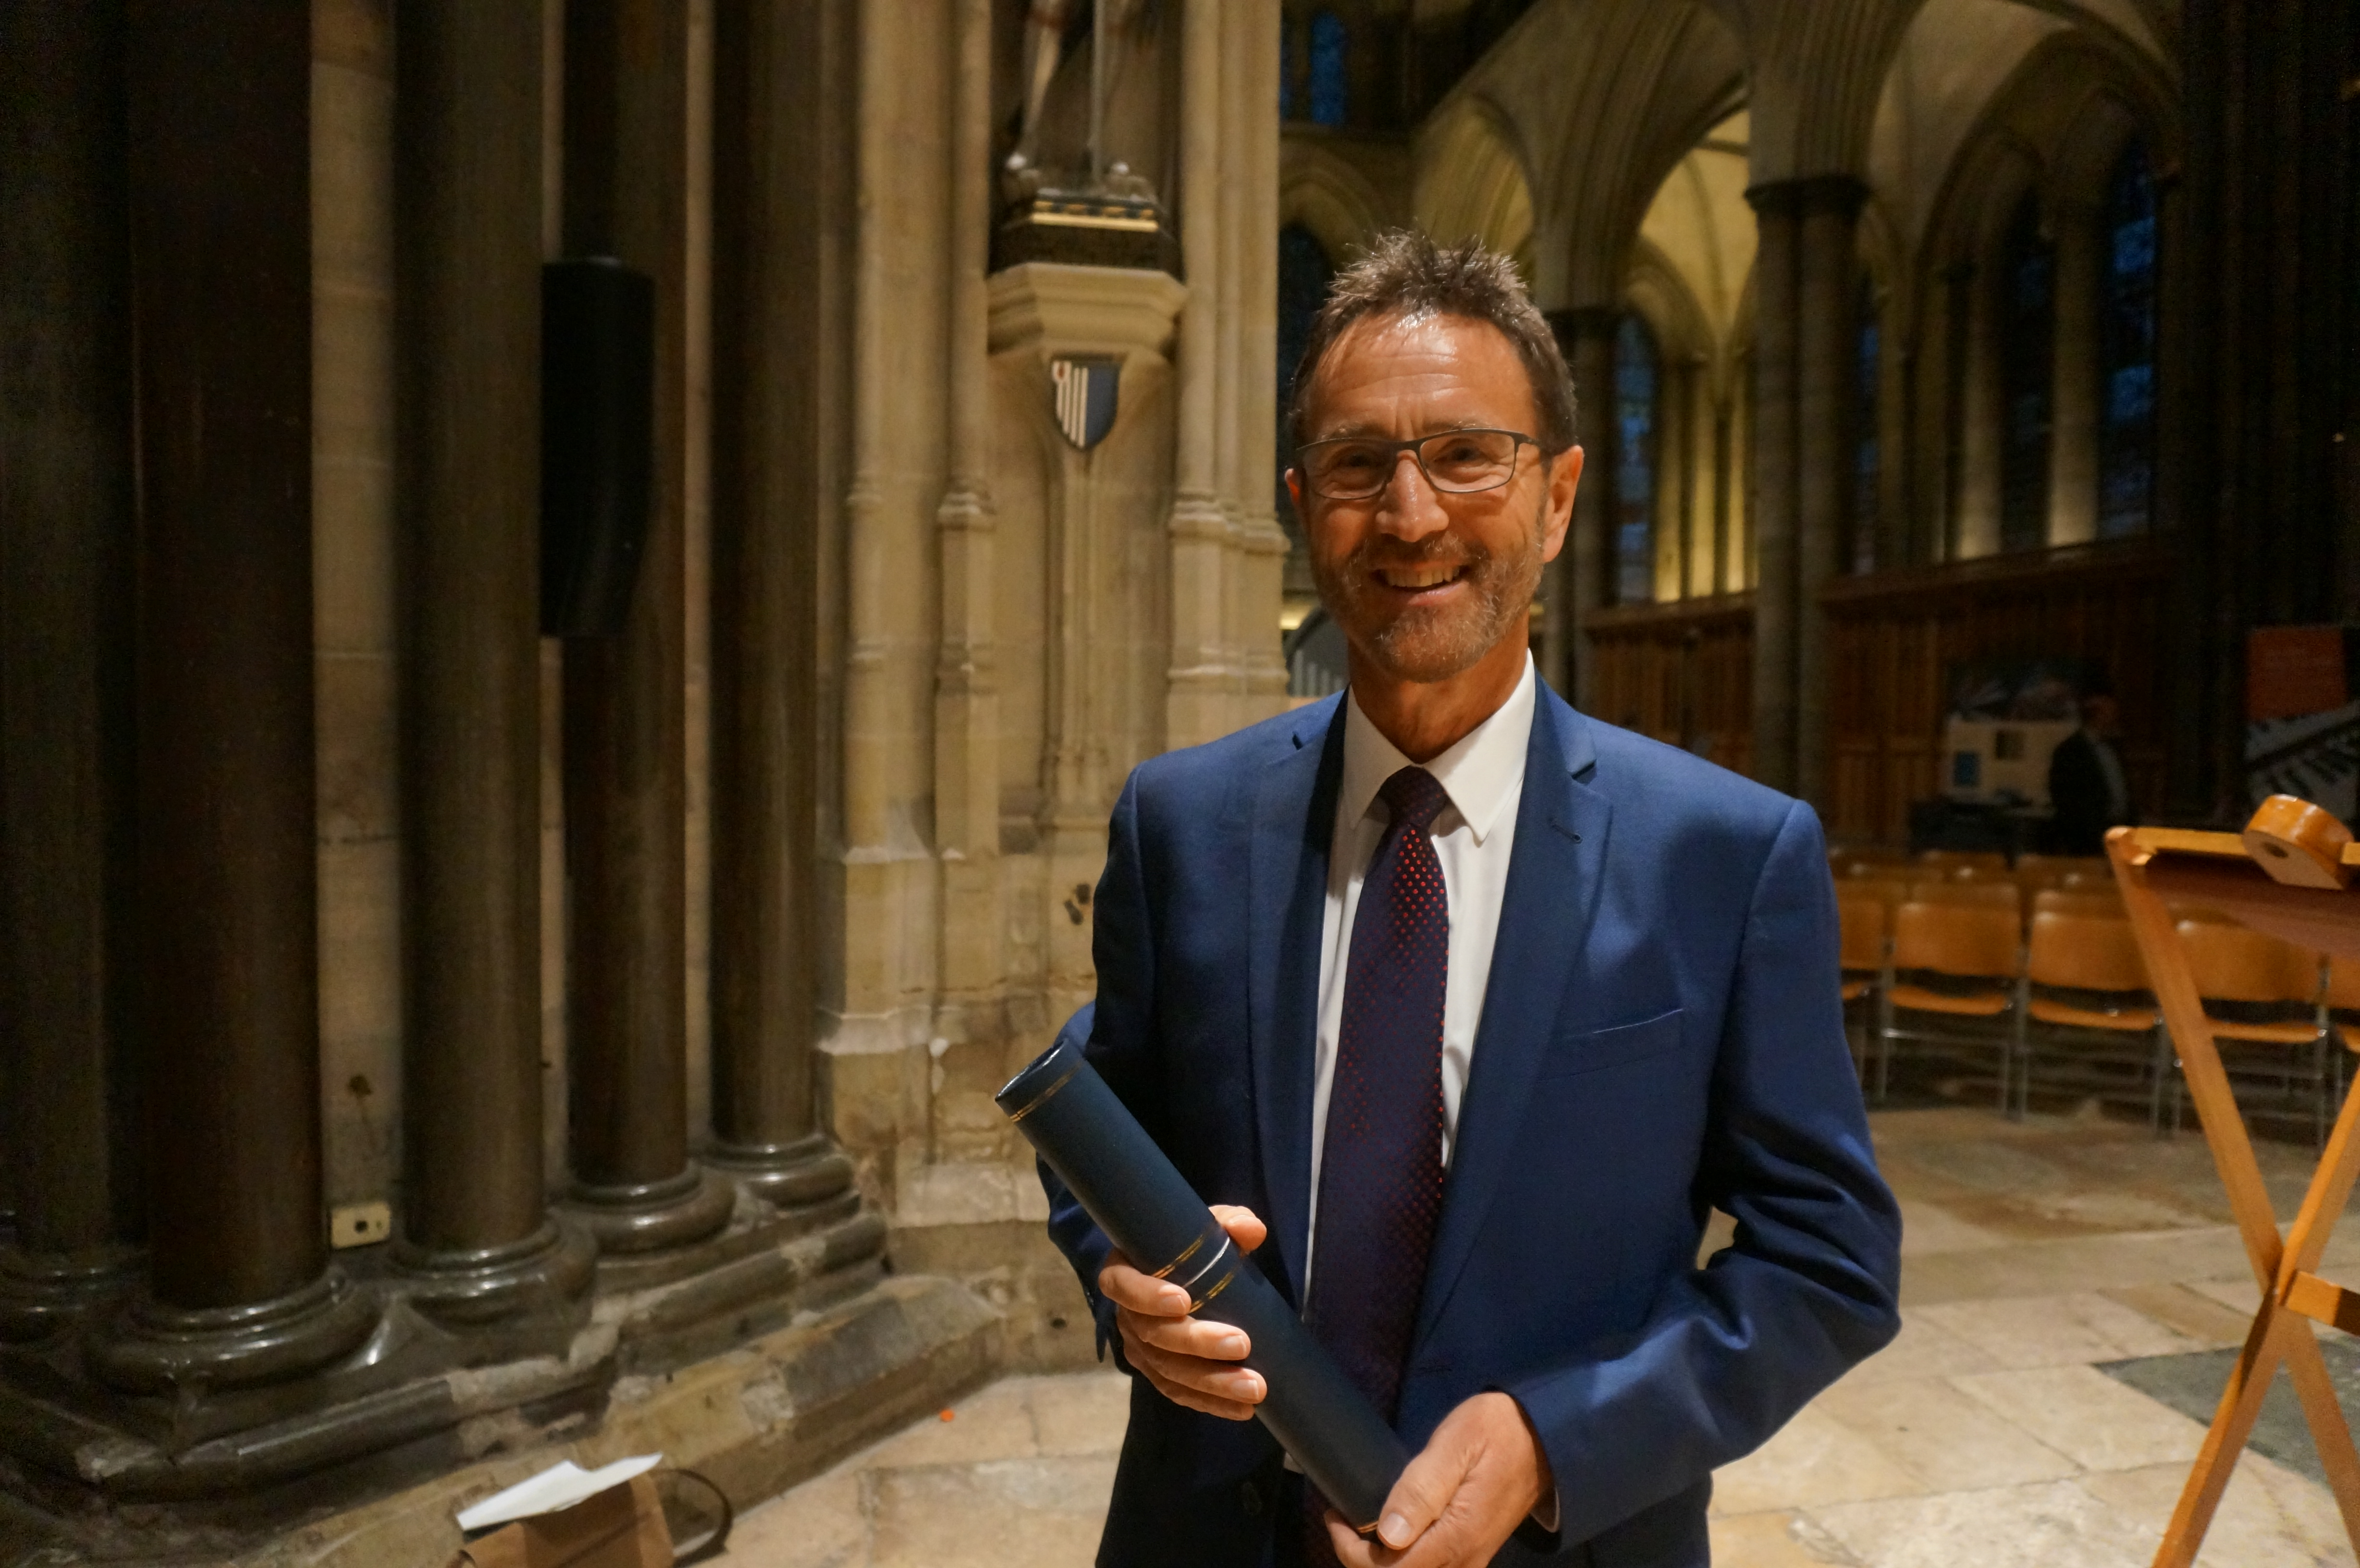 Simon in Salisbury Cathedral last year receiving his award from the RSCM